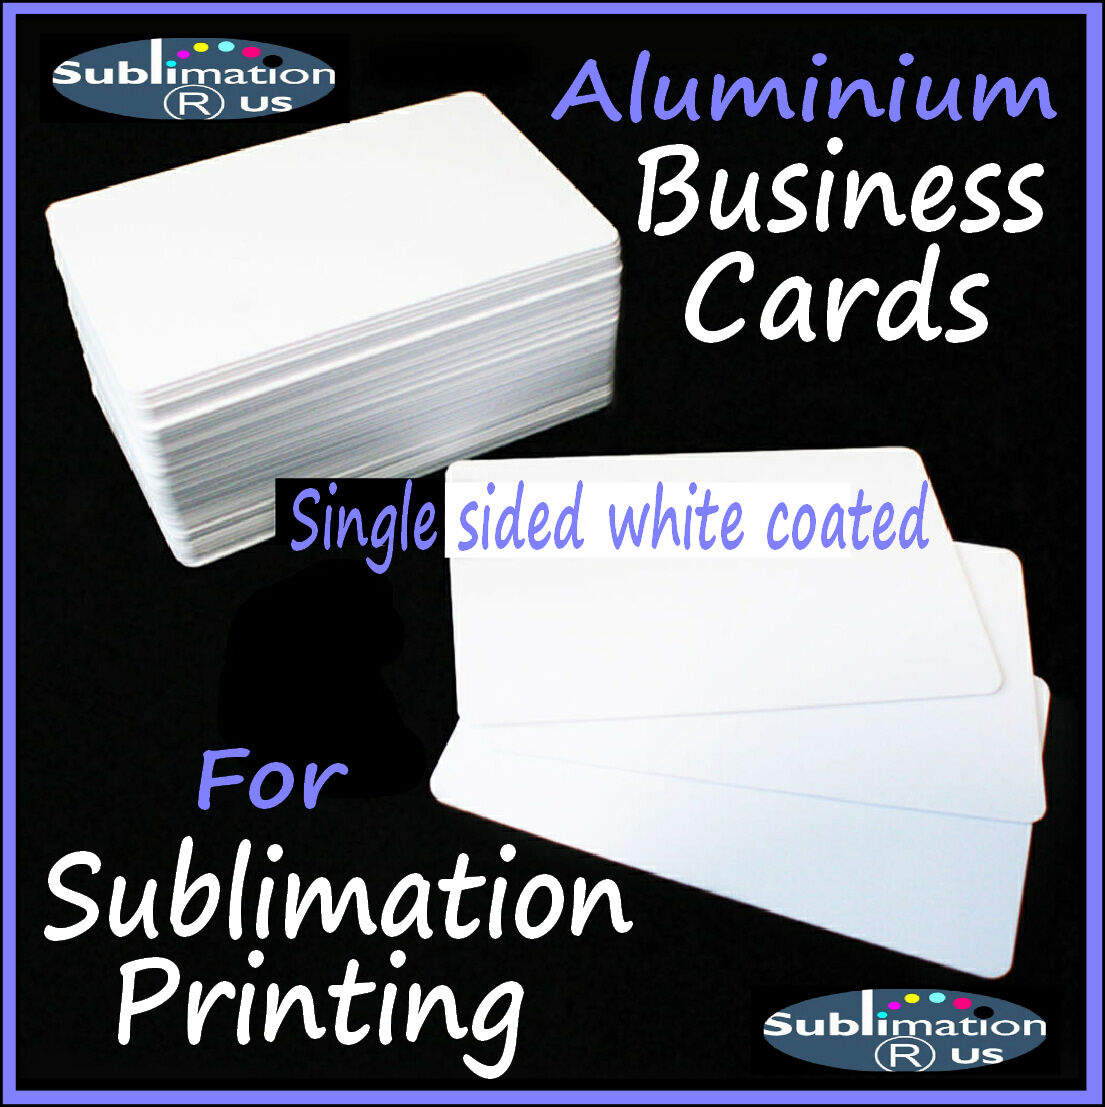 85mm x 55mm sublimation metal business cards small sheets 1 of 1 see more reheart Gallery